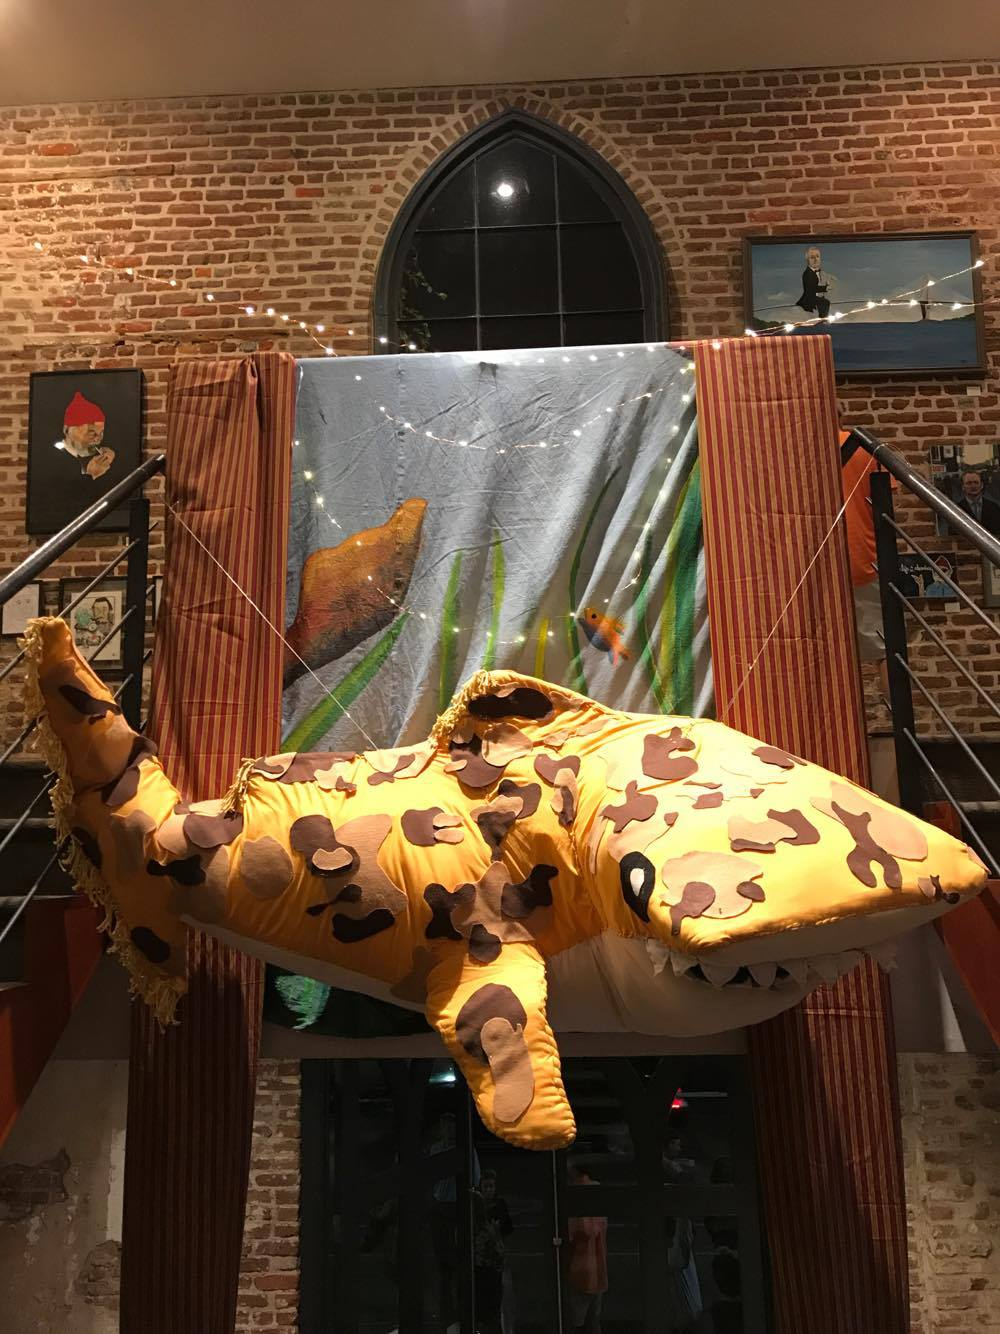 Approximately six feet in length, the Jaguar Shark from  The Life Aquatic  is crafted from a chicken wire frame, yellow and white material, cotton batting, yarn, and felt for the Summer of Bill film screening at the Charleston Music Hall.